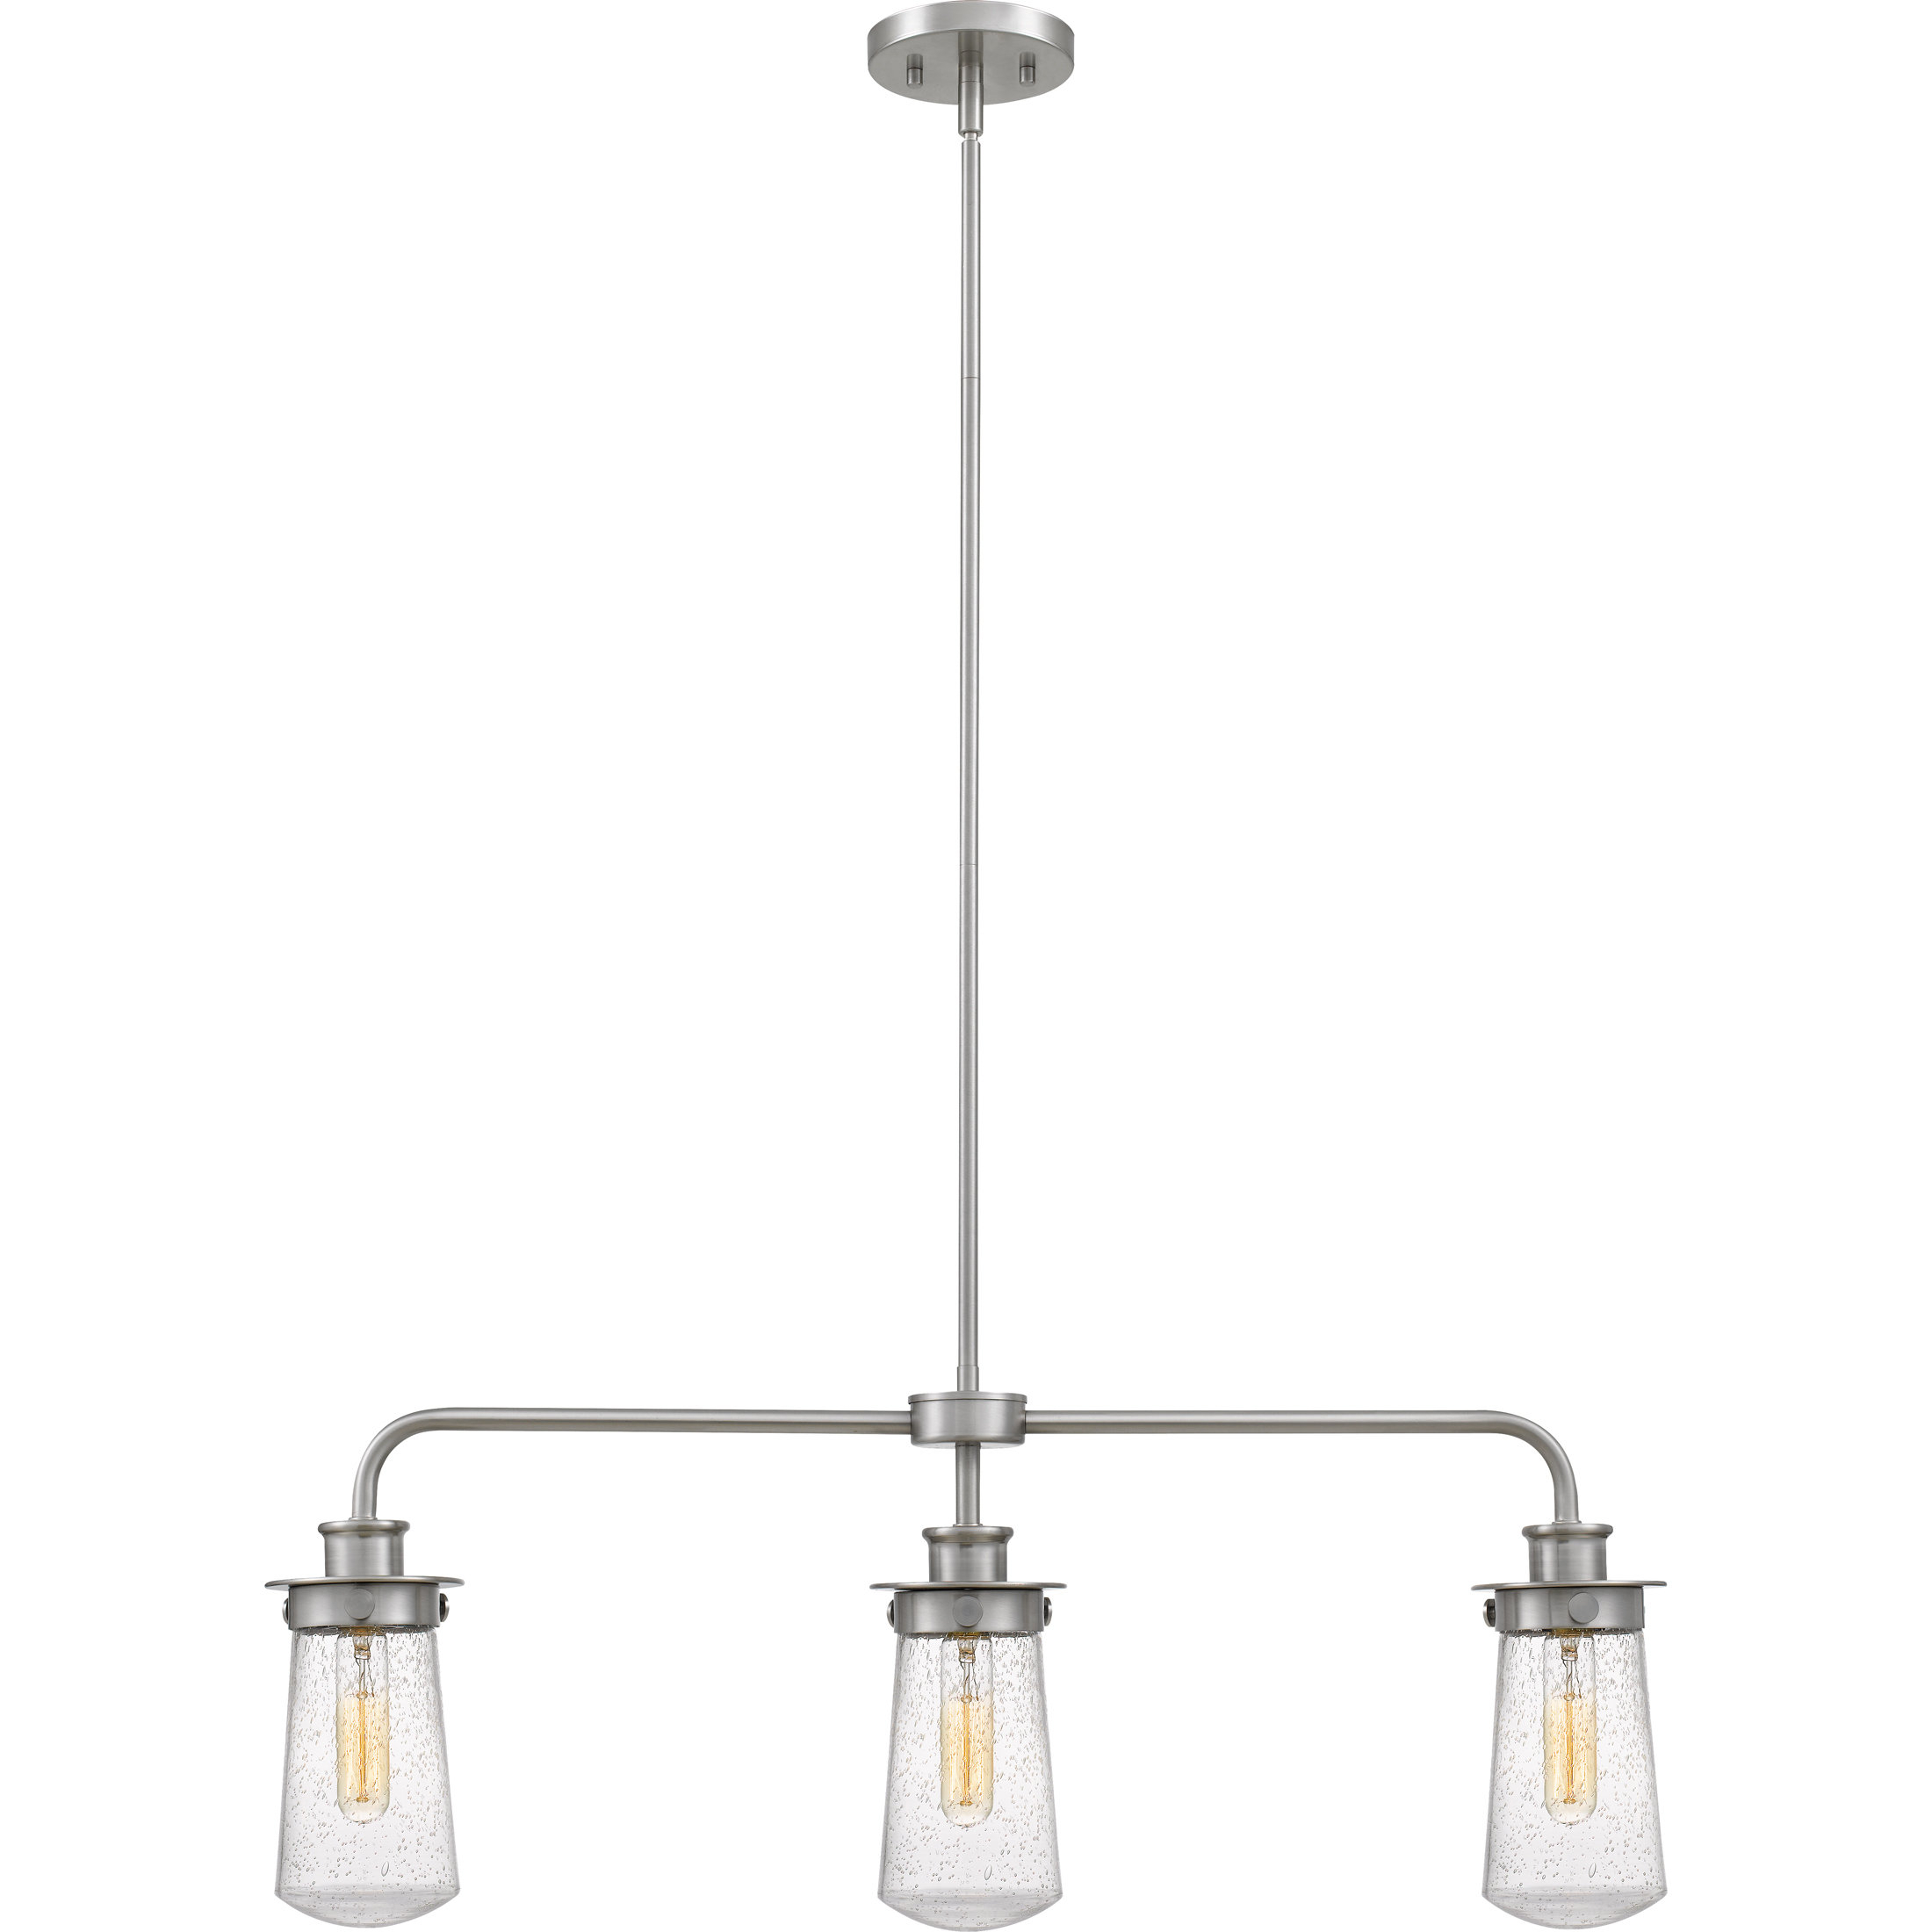 Simsbury 3 Light Kitchen Island Linear Pendant With Cinchring 1 Light Cone Pendants (View 27 of 30)